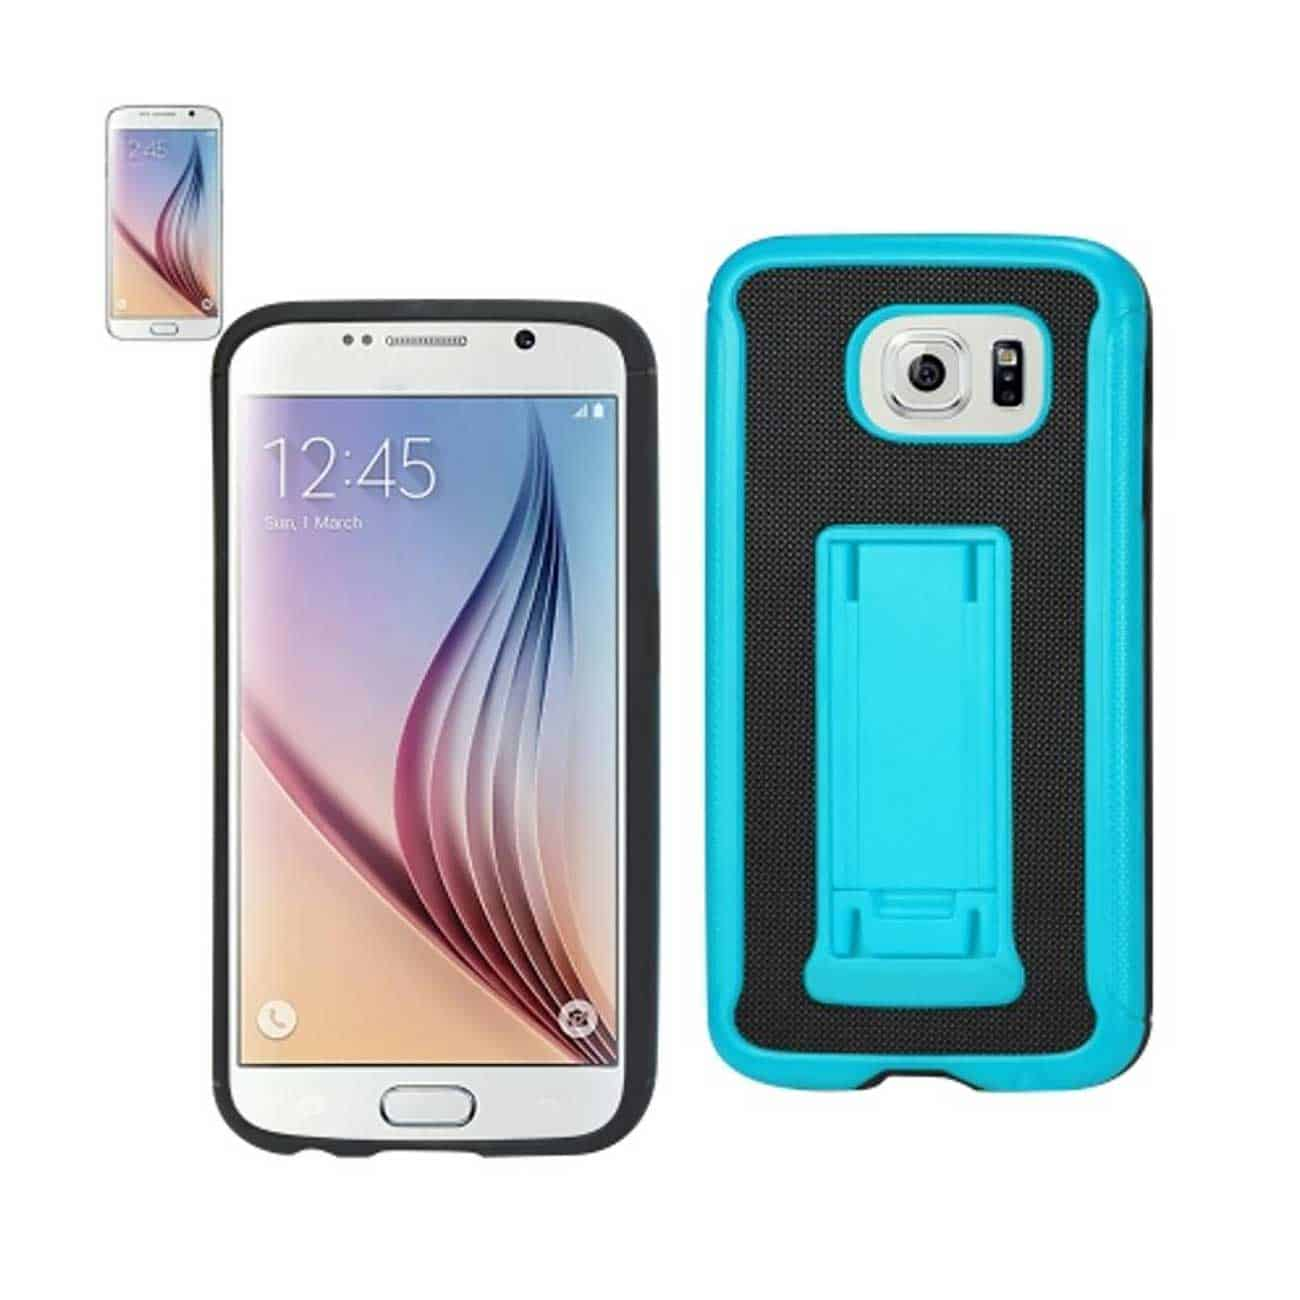 SAMSUNG GALAXY S6 HYBRID HEAVY DUTY CASE WITH VERTICAL KICKSTAND IN BLACK NAVY